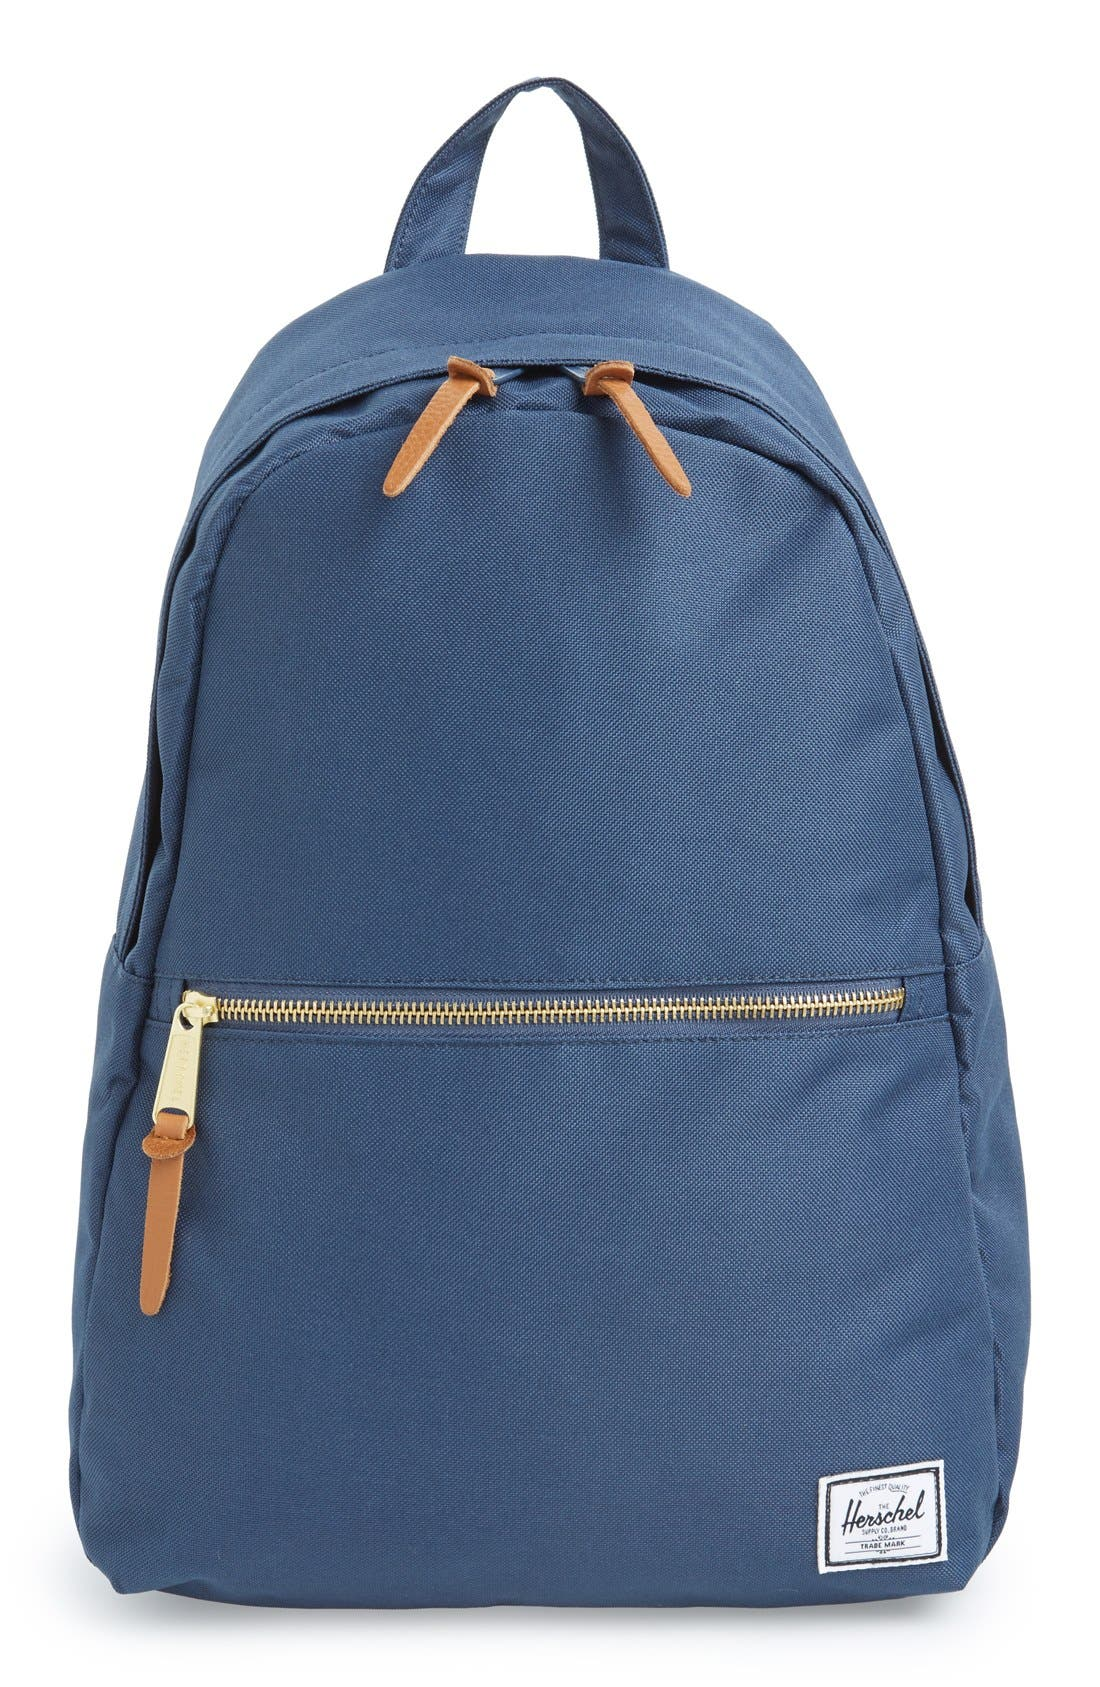 Main Image - Herschel Supply Co. 'Town Mid-Volume' Backpack